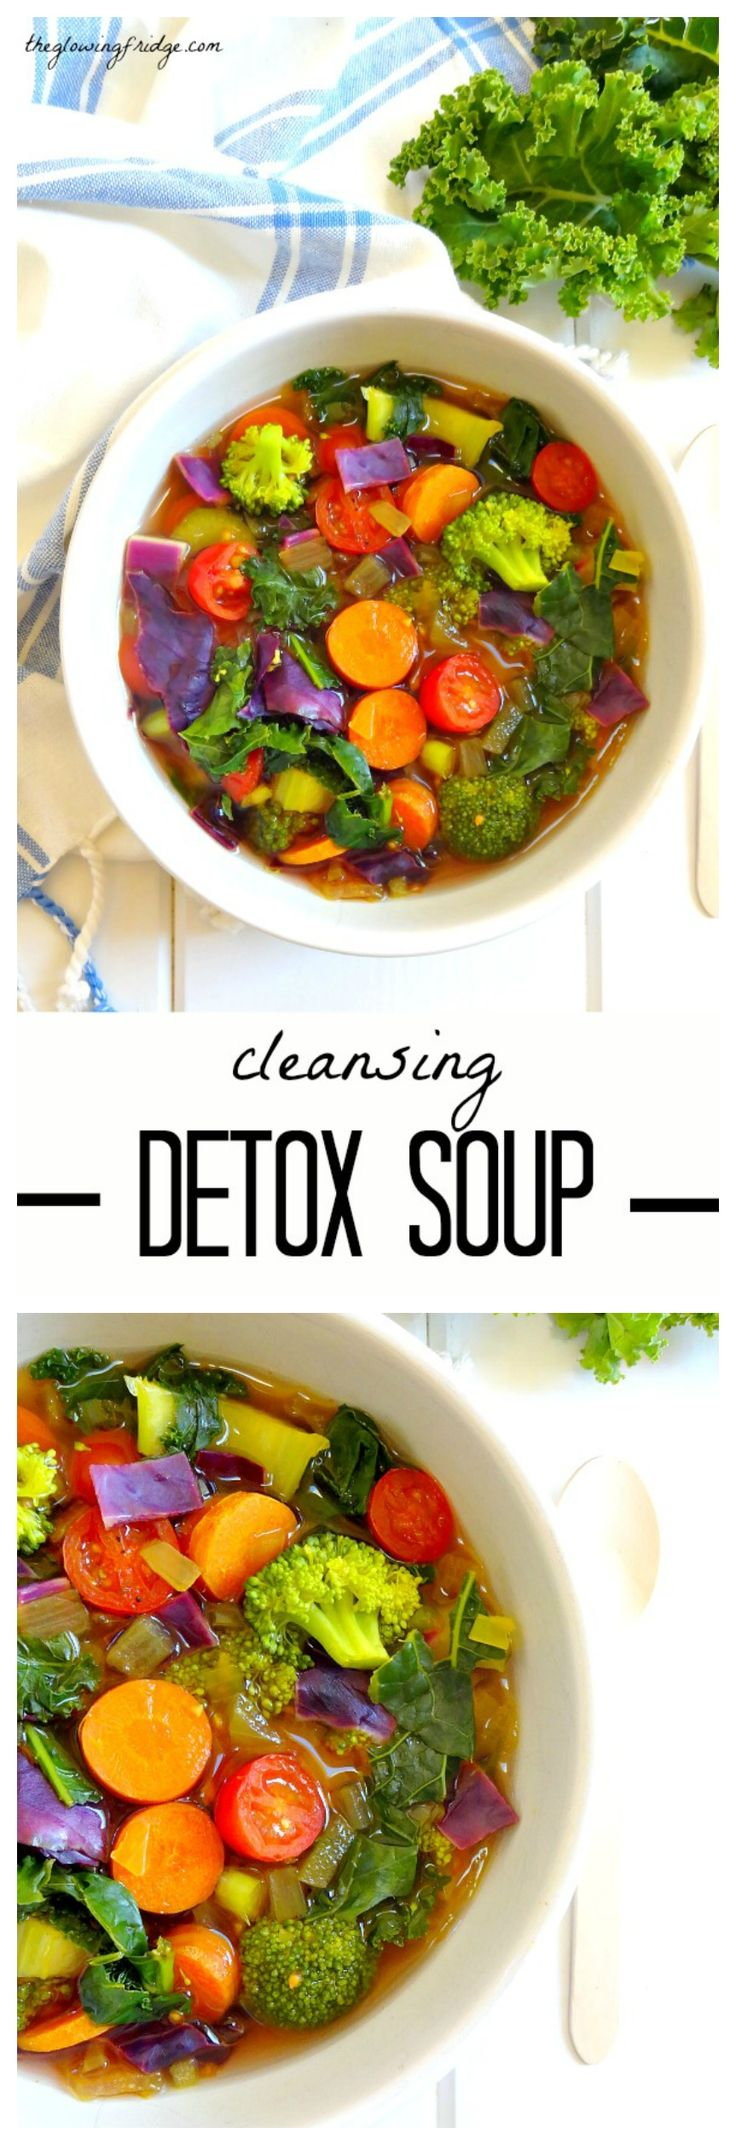 Soup Cleansing Detox Flu soccer Detox     Soup  sale and usa Detox Recipe jersey